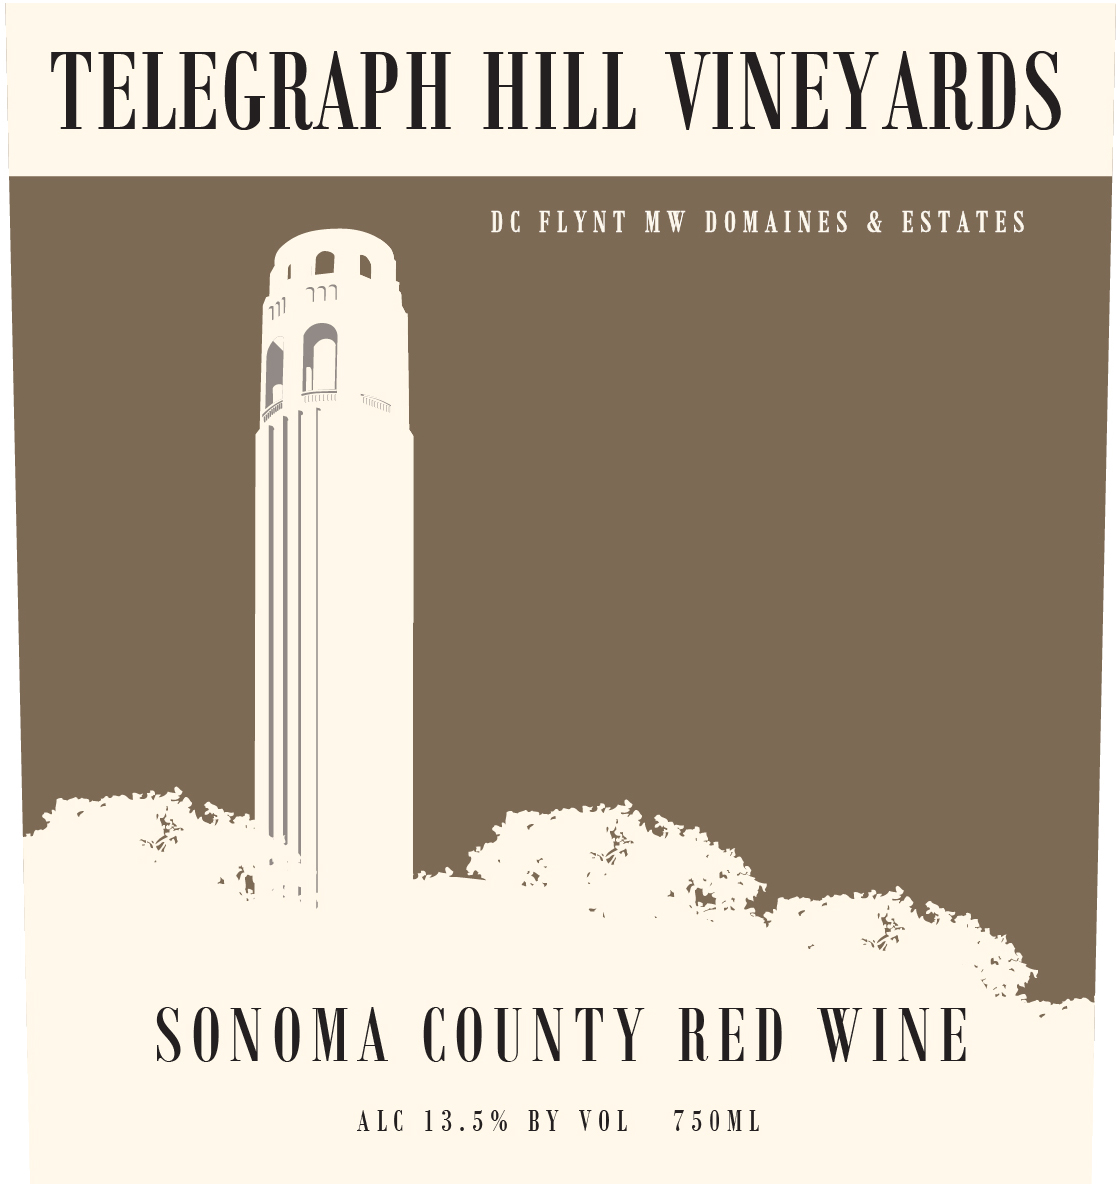 Telegraph Hill Sonoma County Red is a classically spicy-rich red blend. This dense wine is dominated by notes of zesty raspberry and black cherry preserves woven together by aromas of gently roasted mocha, cedar, oak, and vanilla with a distinct finish of wild-berries.